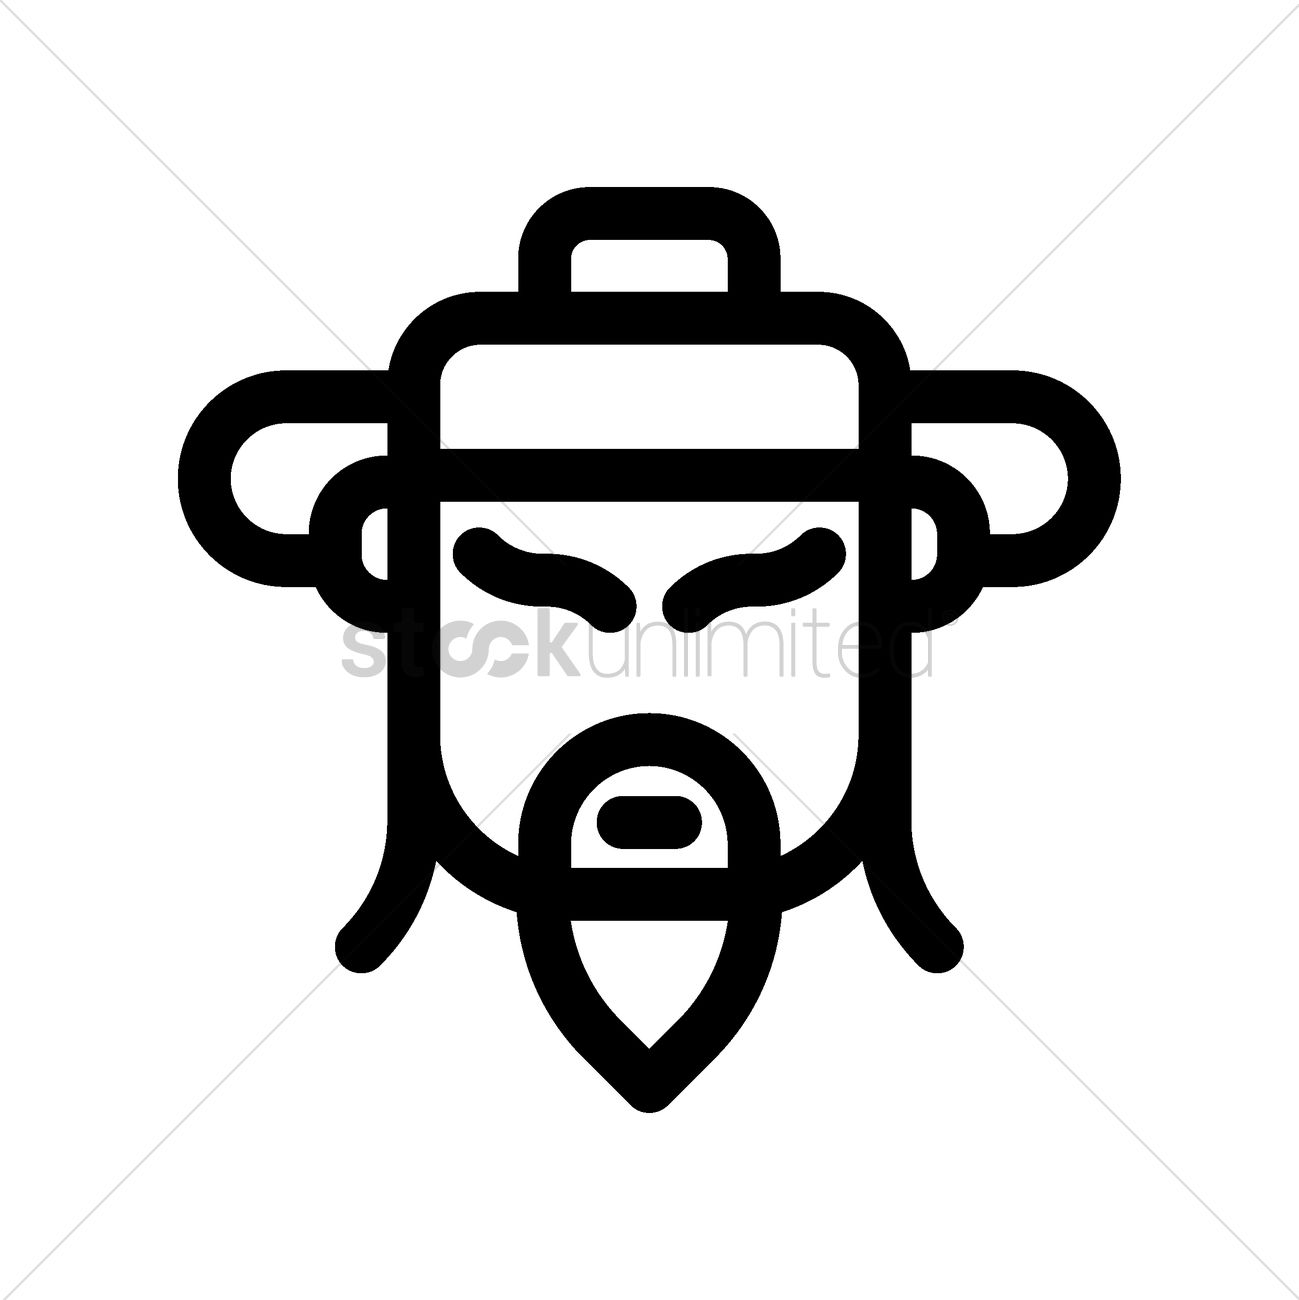 Chinese God Of Prosperity Icon Vector Image 1979095 Stockunlimited